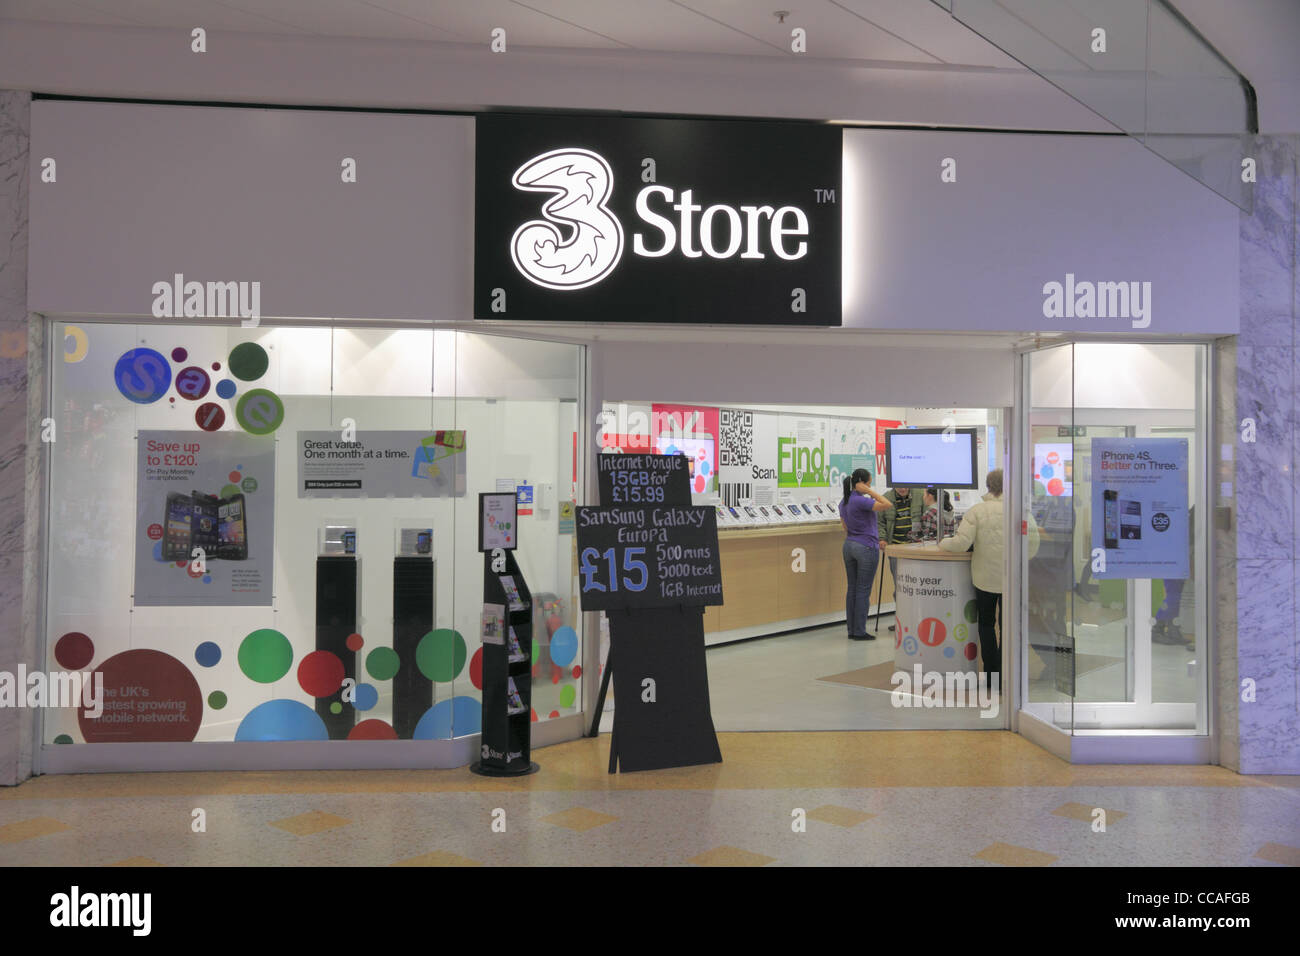 3 Mobile Shop Sign Stock Photos 3 Mobile Shop Sign Stock Images